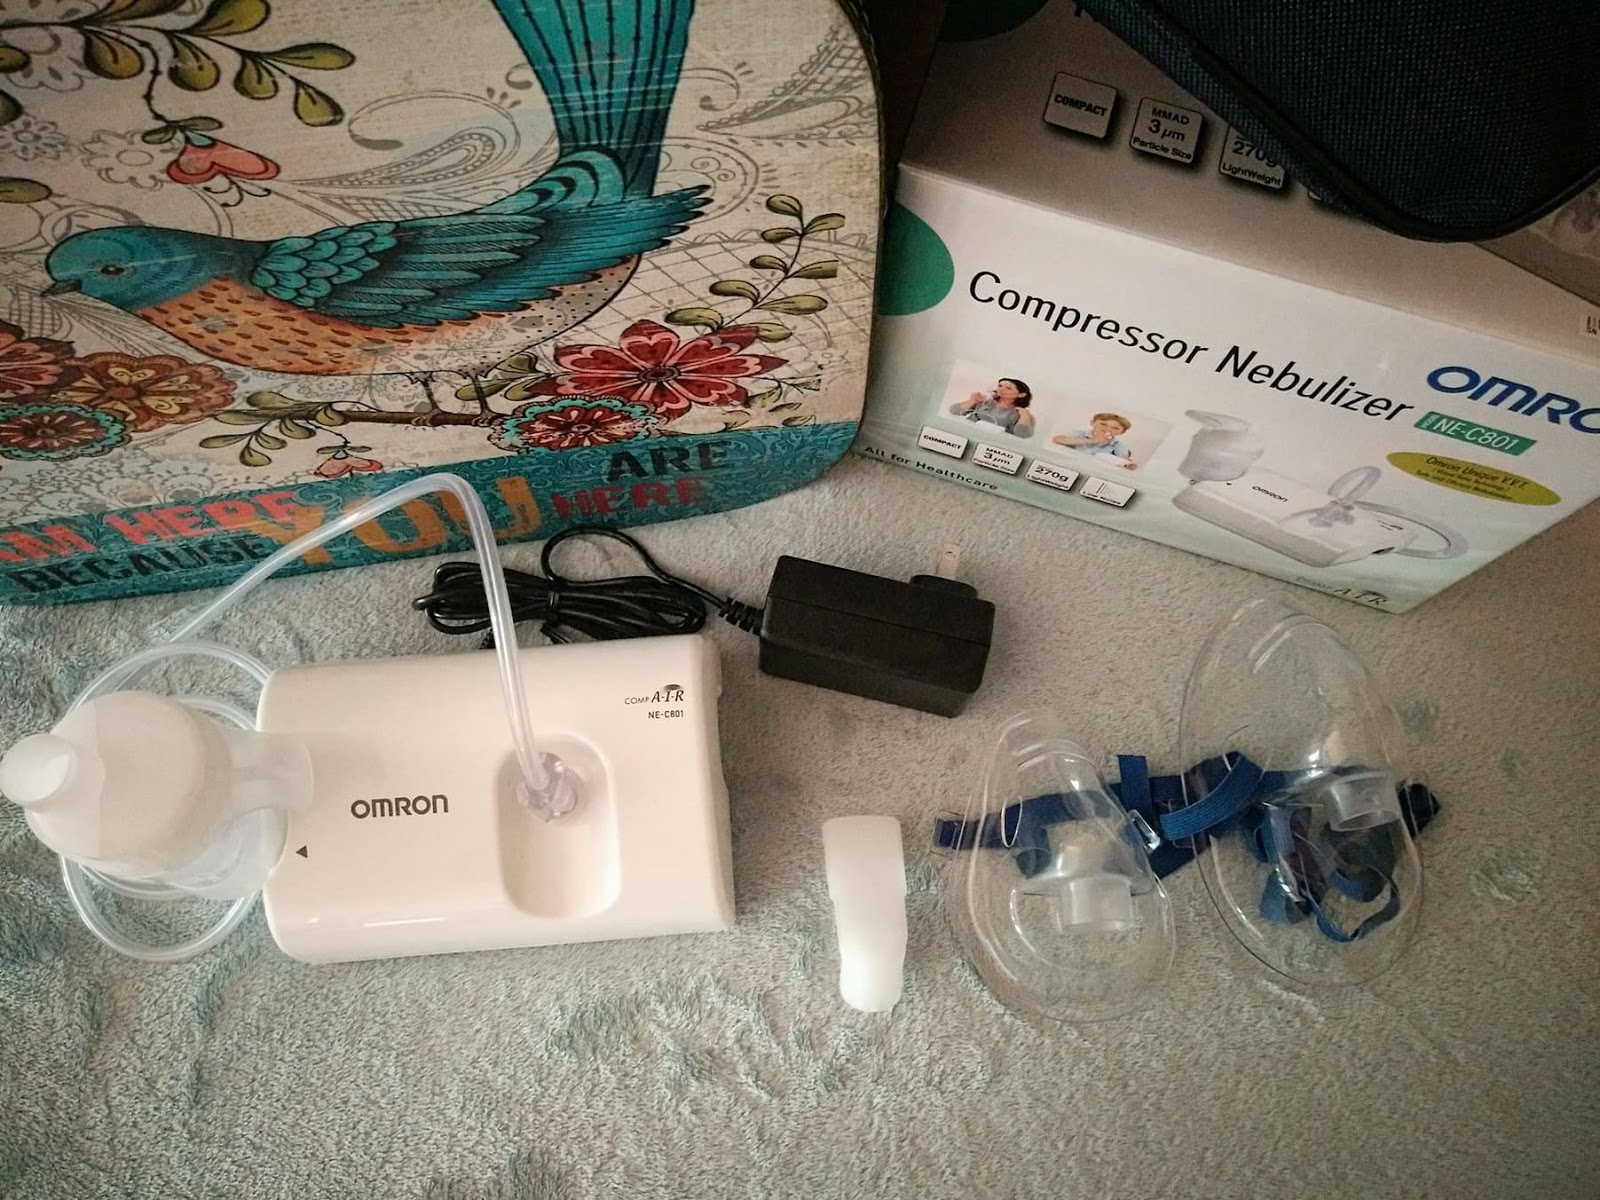 Omron Ne C801 Compact Air Nebulizer Review The Super Momma C28 Contents Of Kit